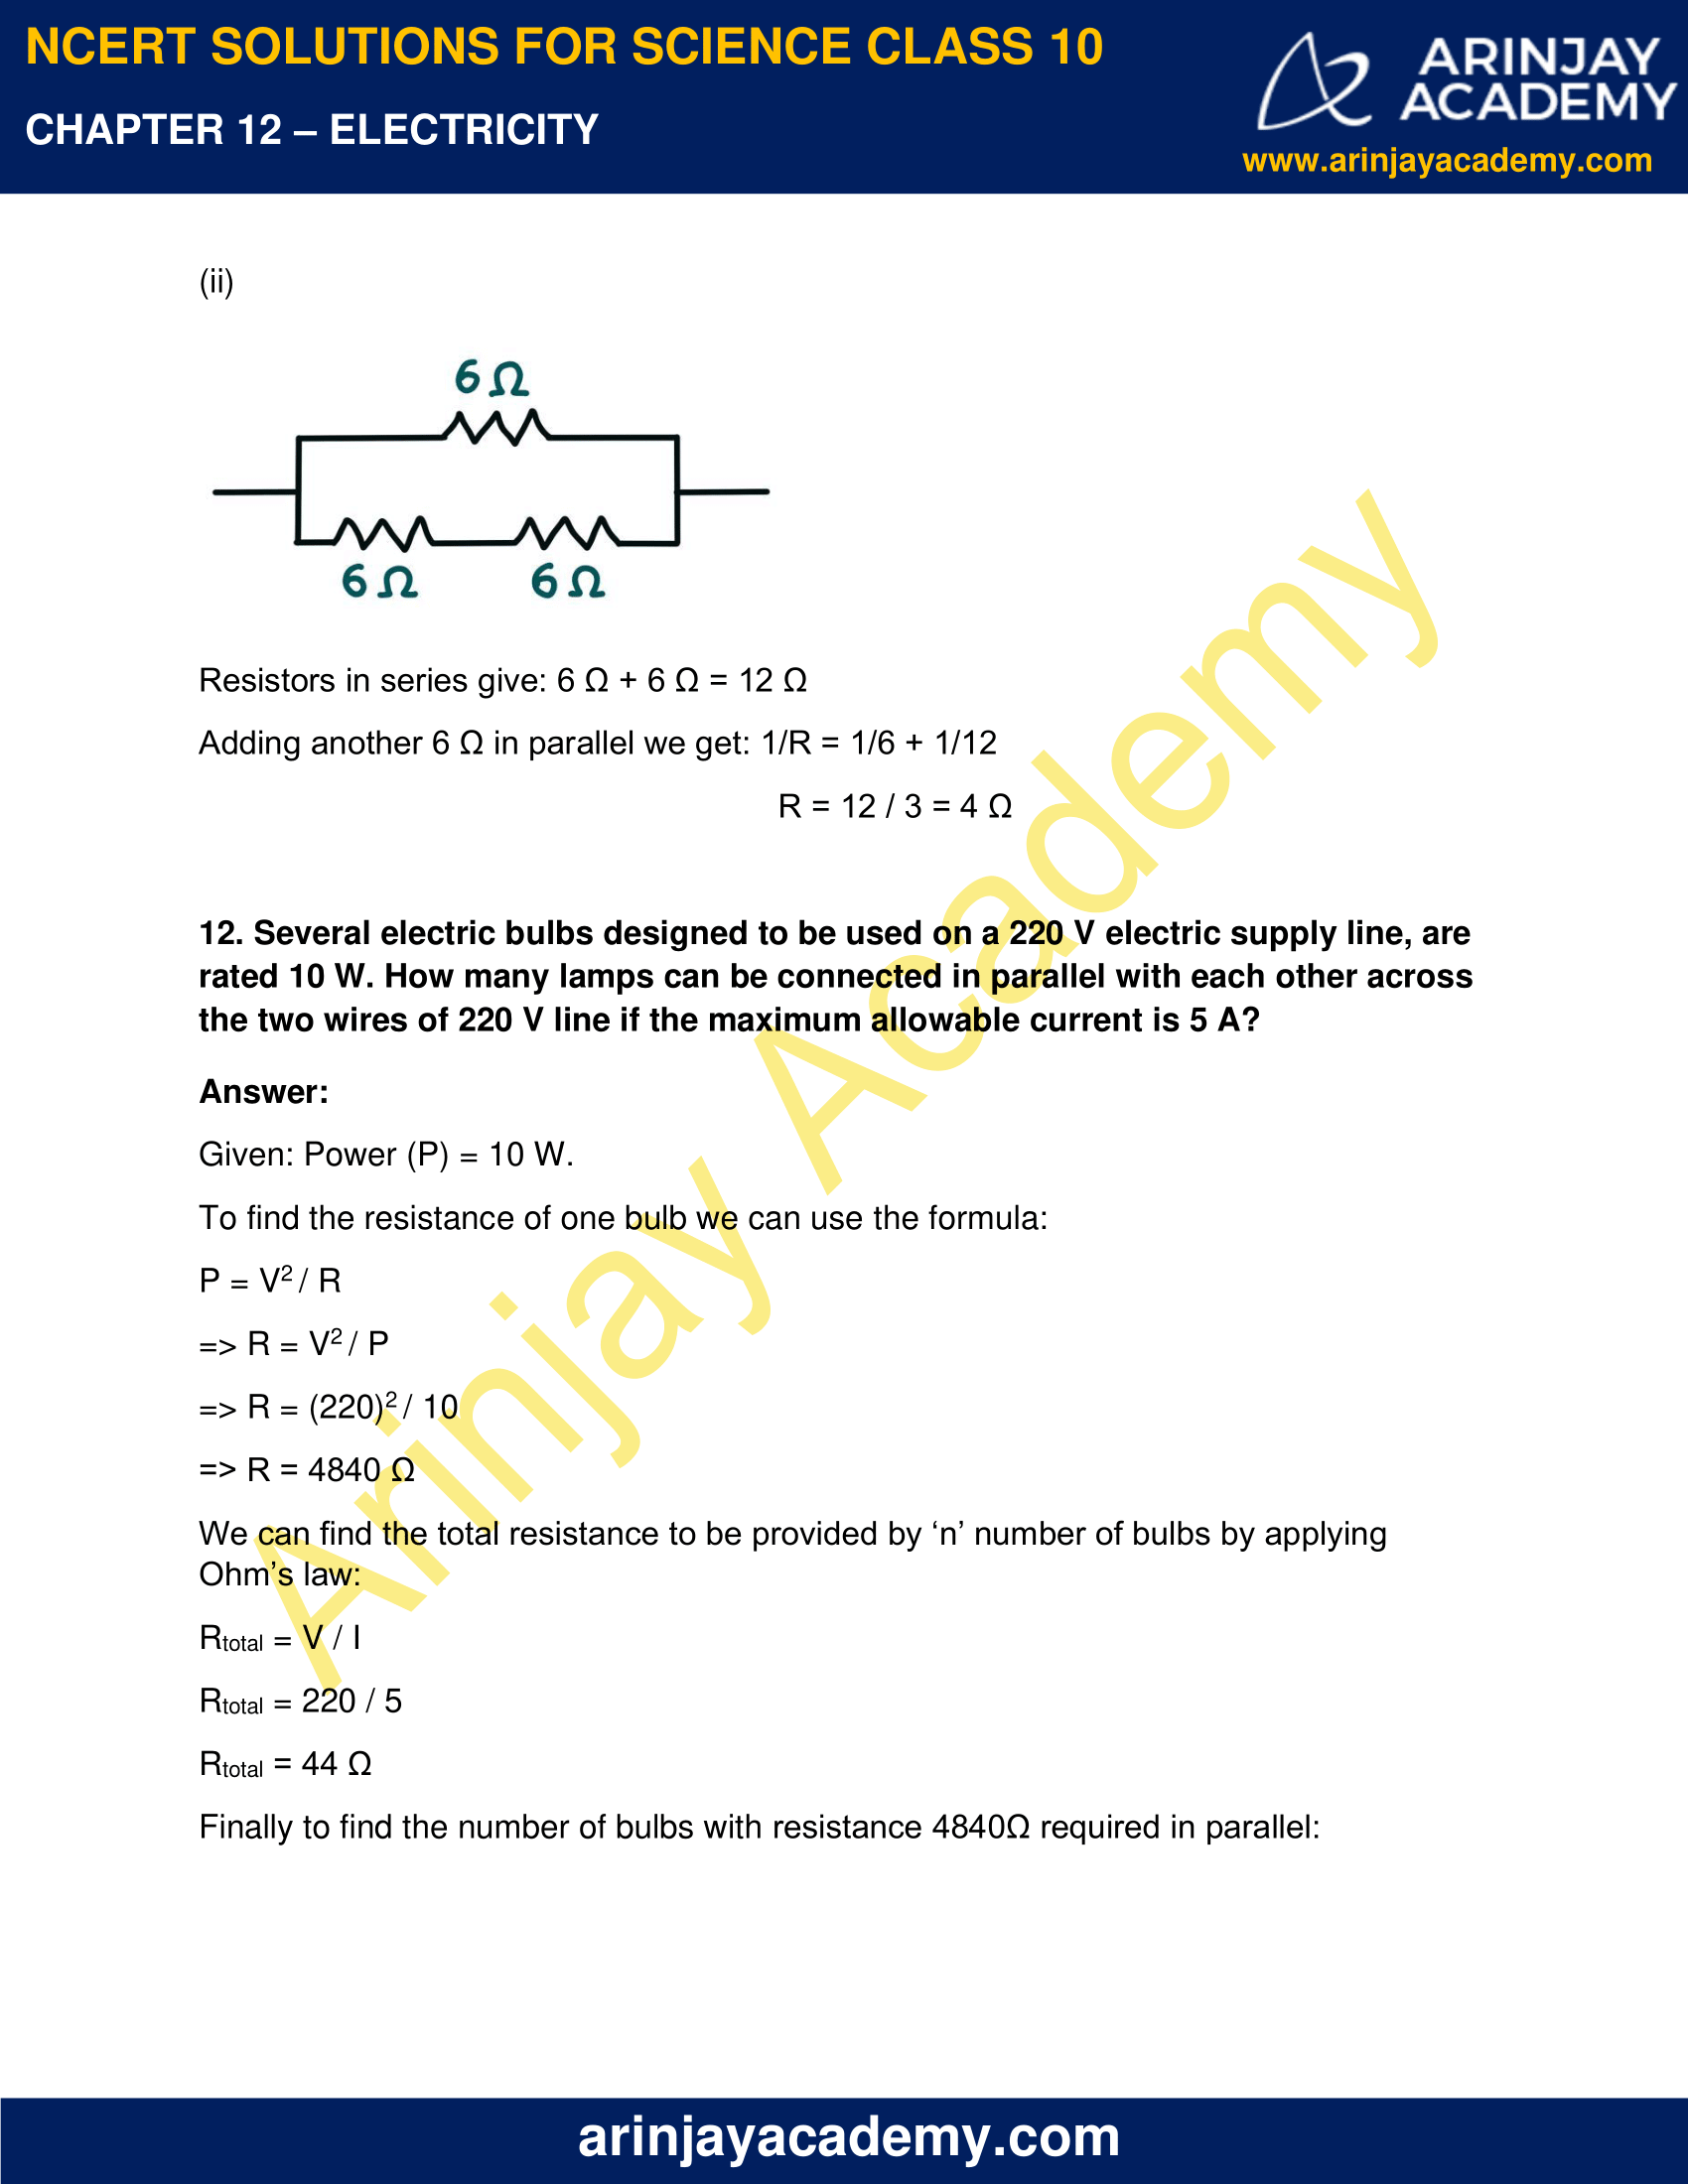 NCERT Solutions for Class 10 Science Chapter 12 Electricity image 18